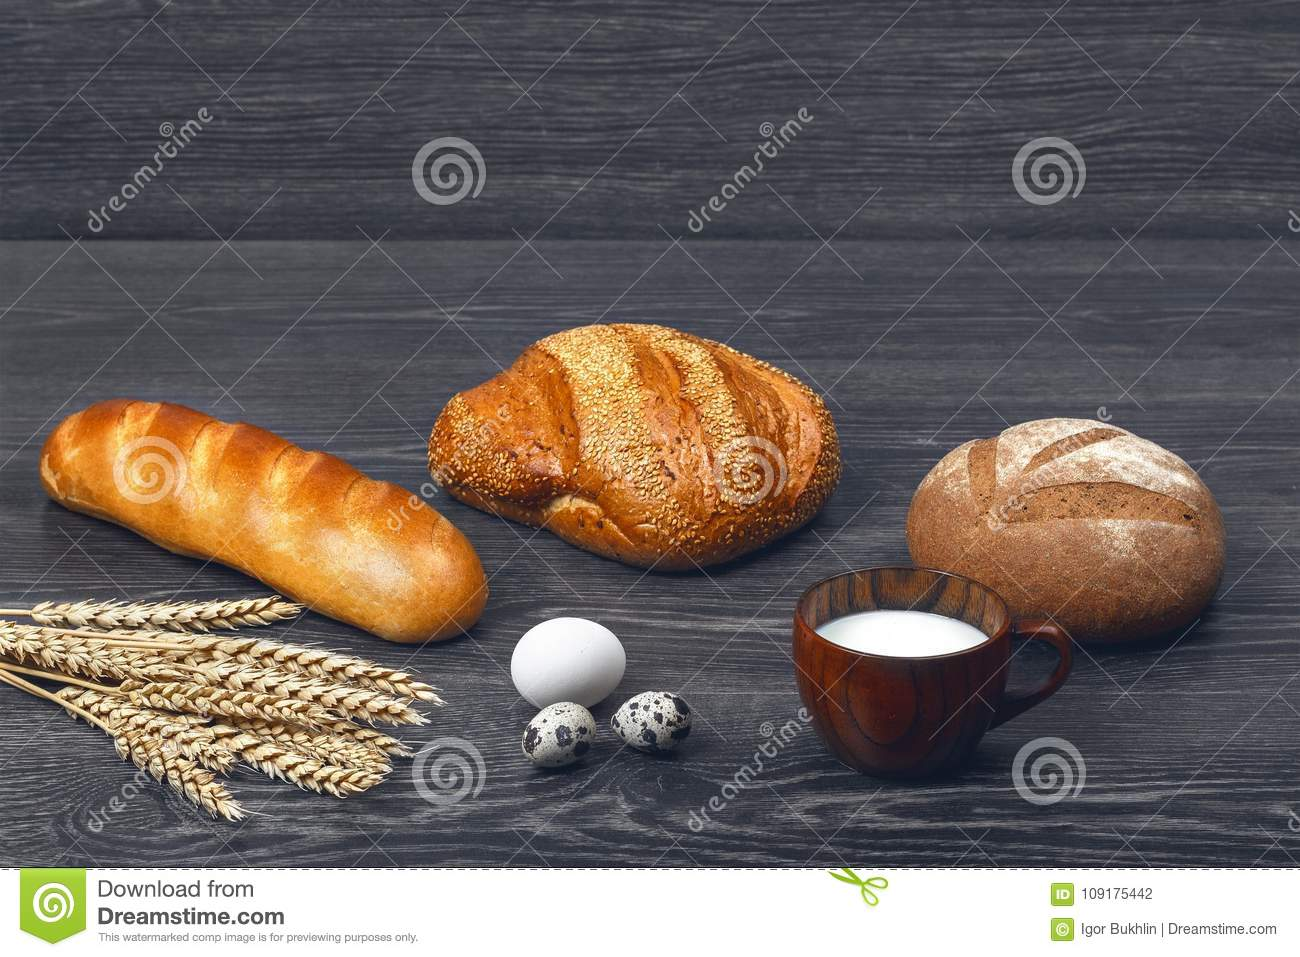 Ears of wheat, chicken and quail eggs, glass of milk, freshly baked bread and a loaf on wooden background.